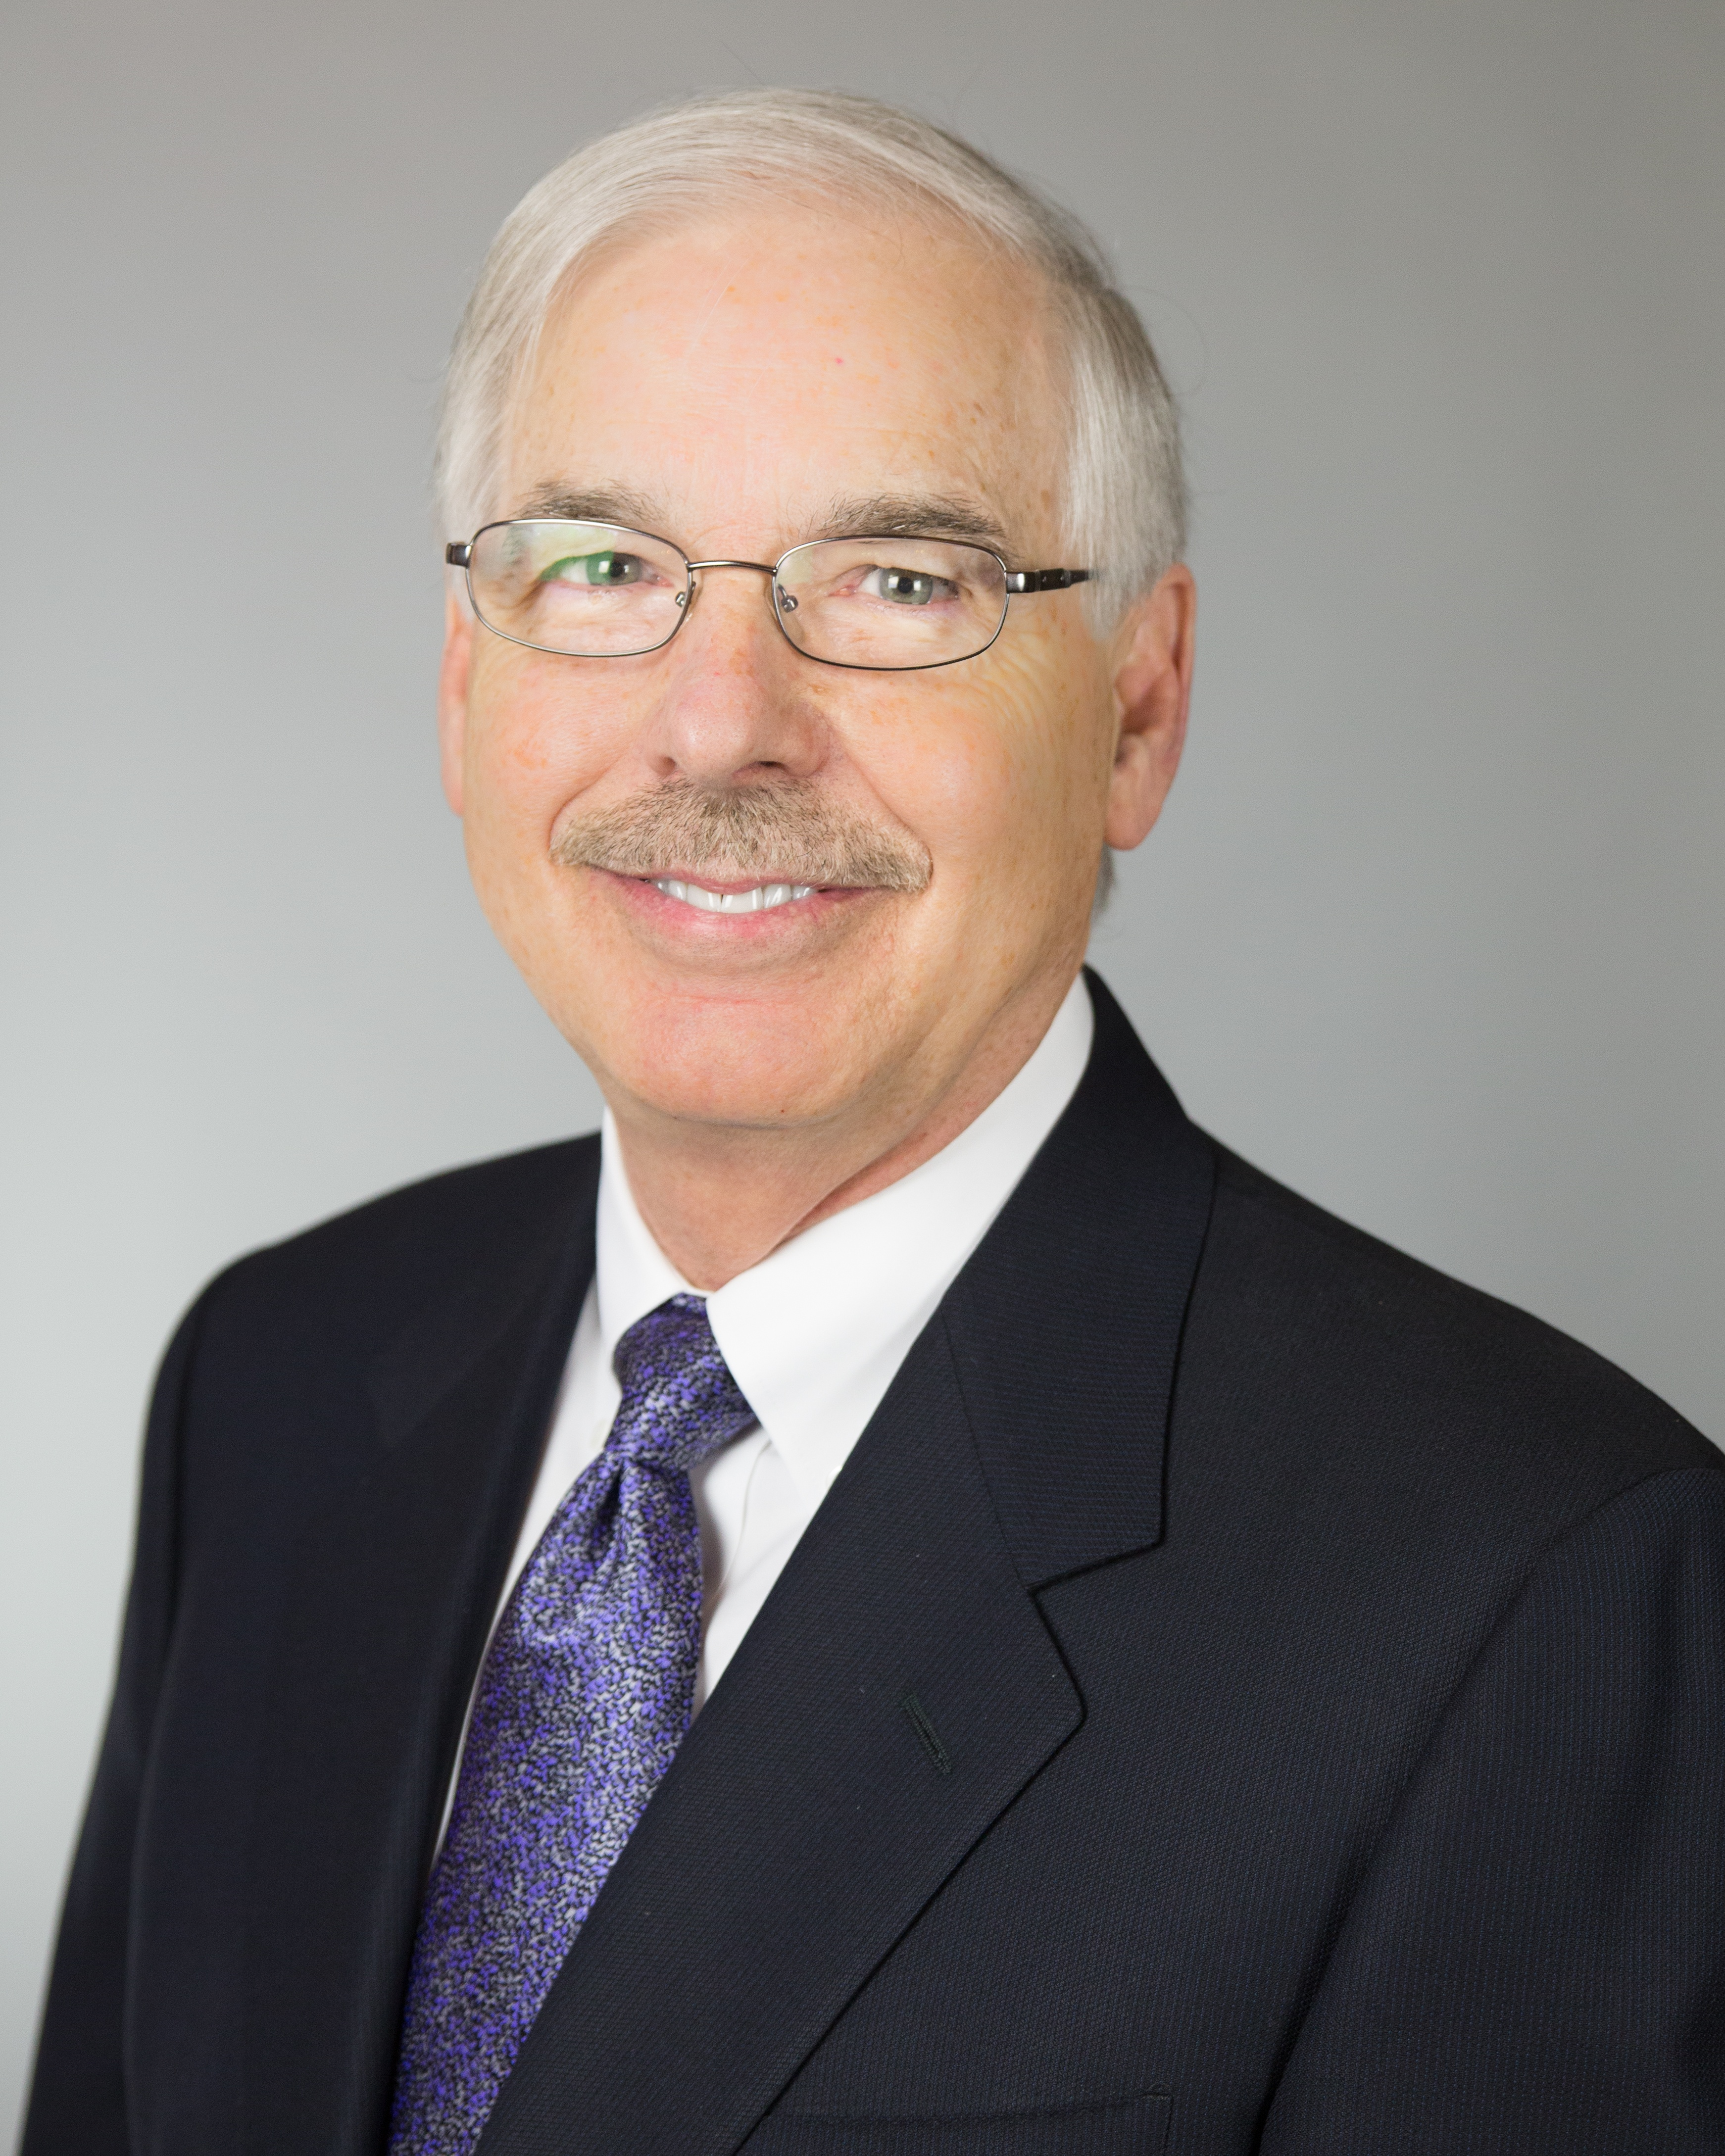 CMTC President and CEO James Watson